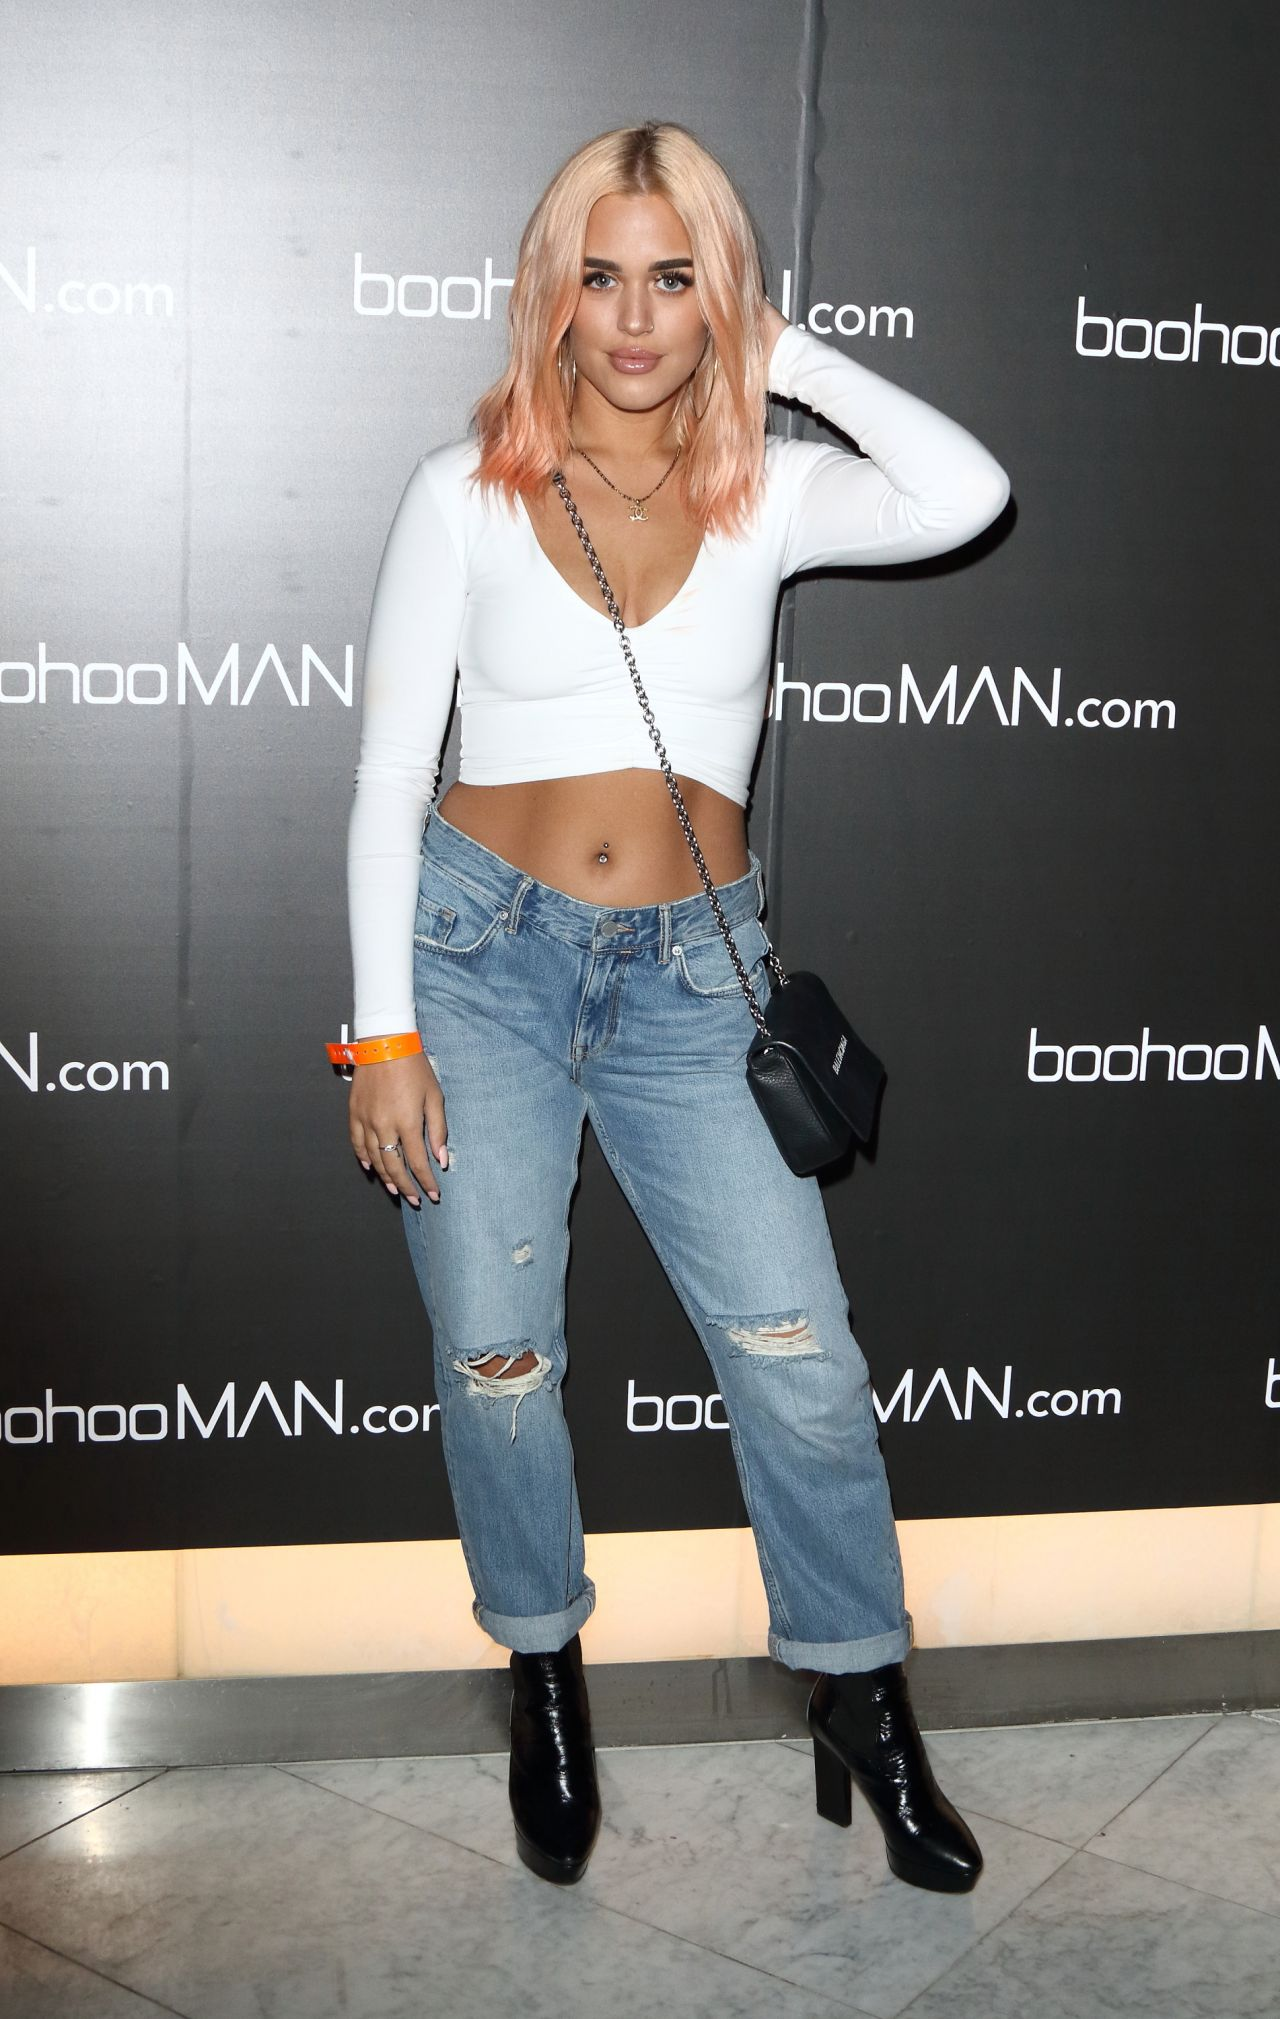 Boohoo Man By Dele Event In London 05